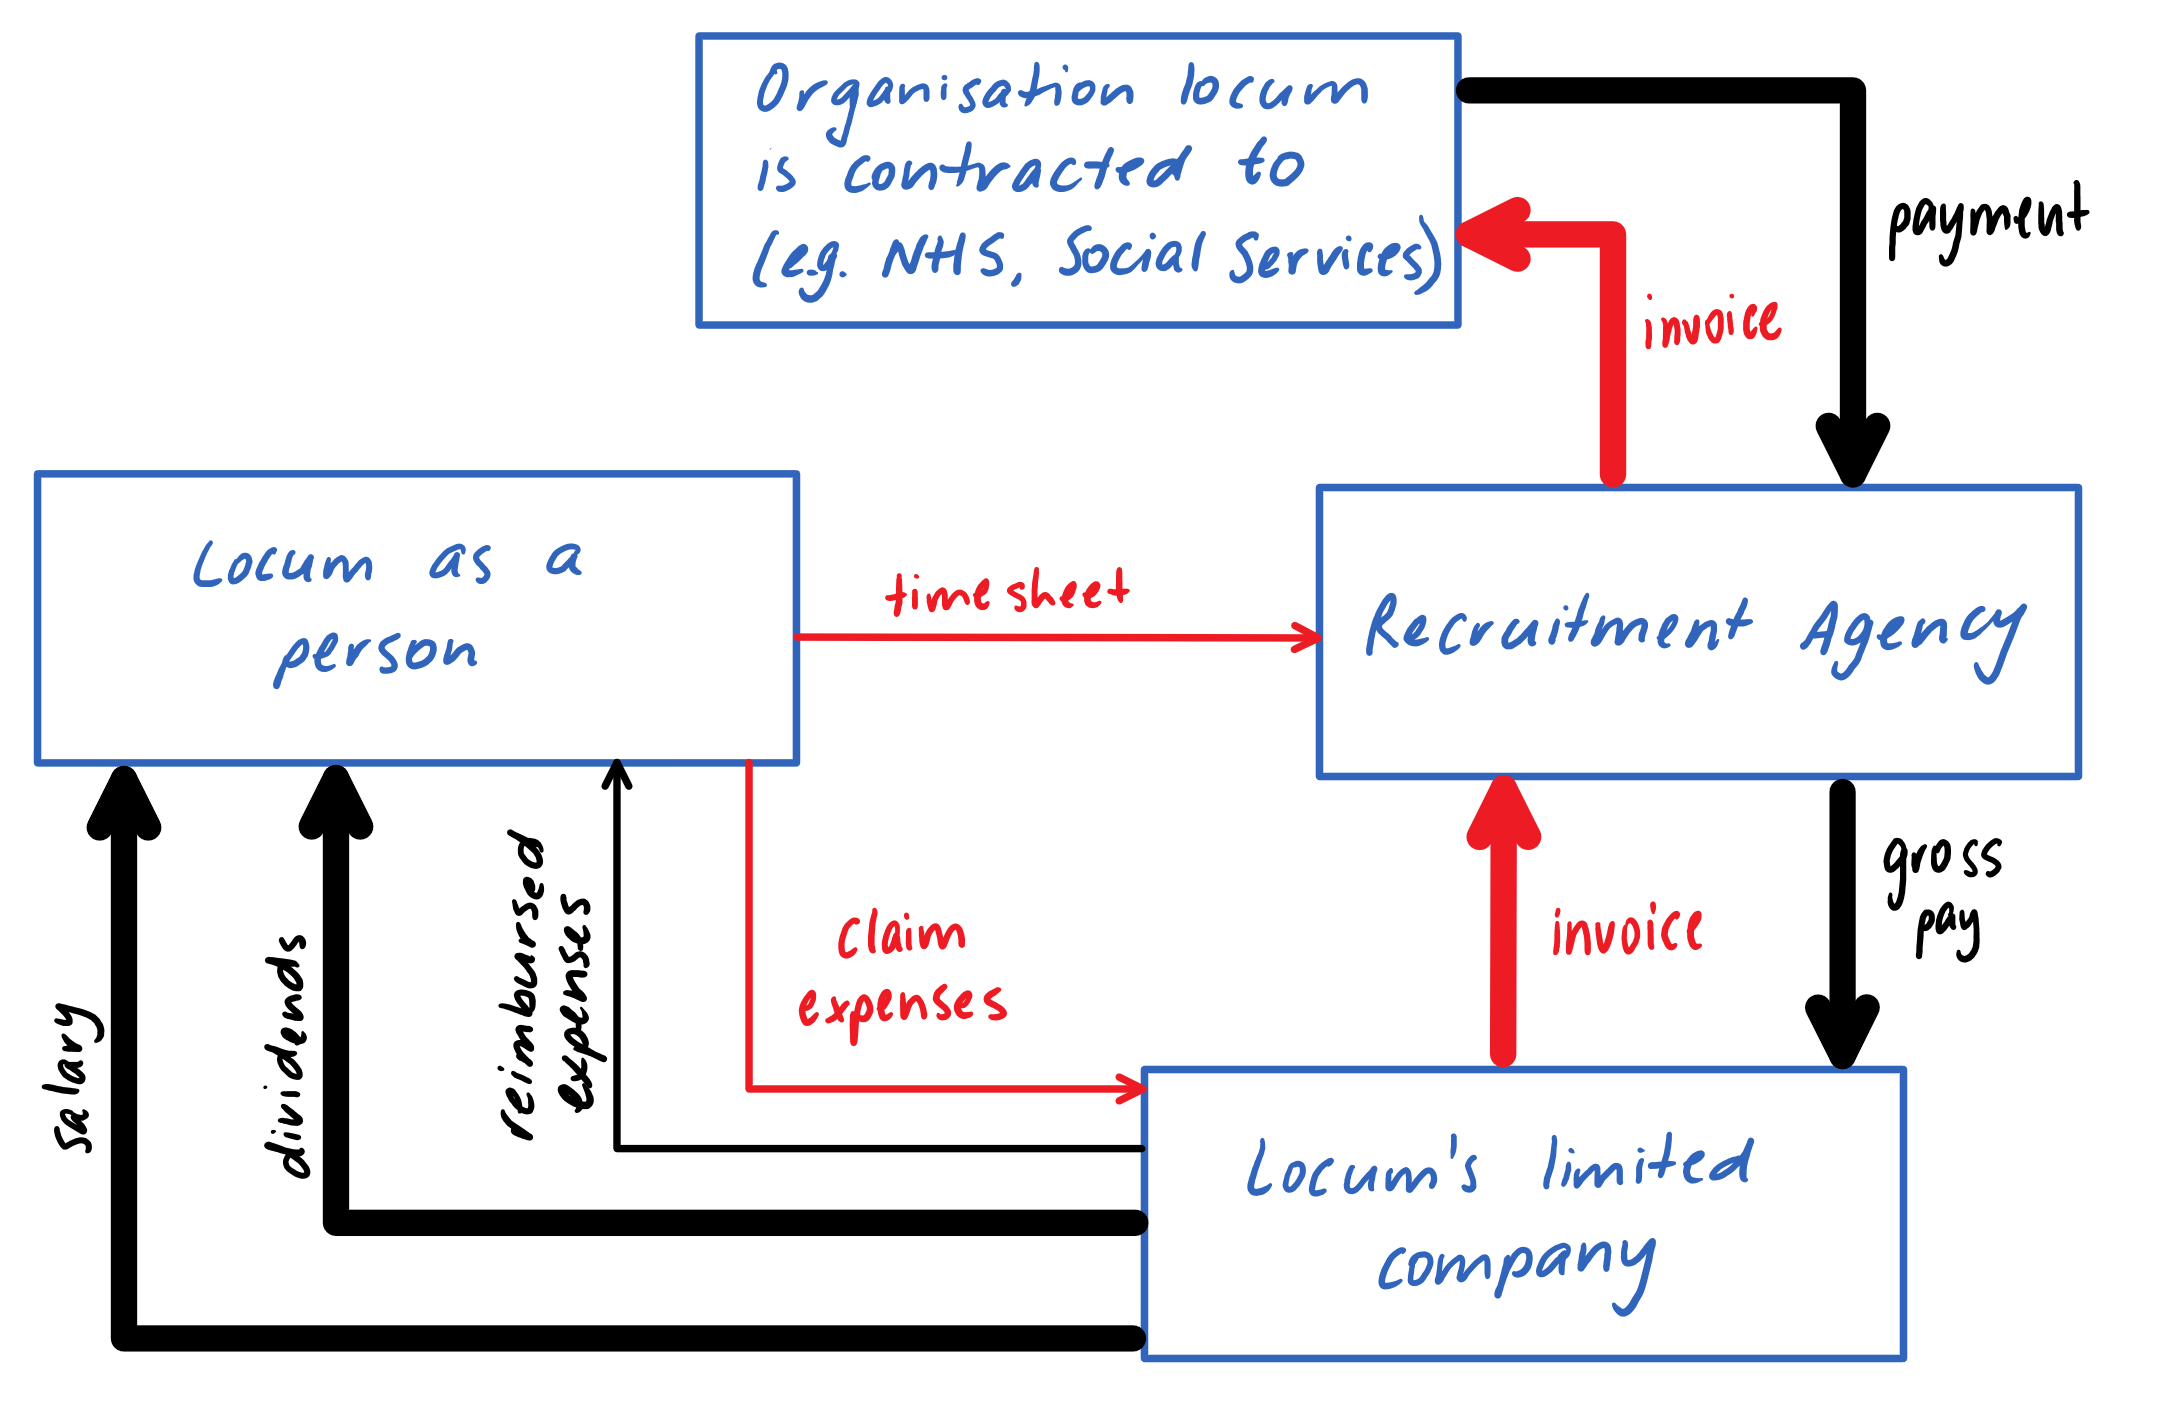 Limited Company Diagram